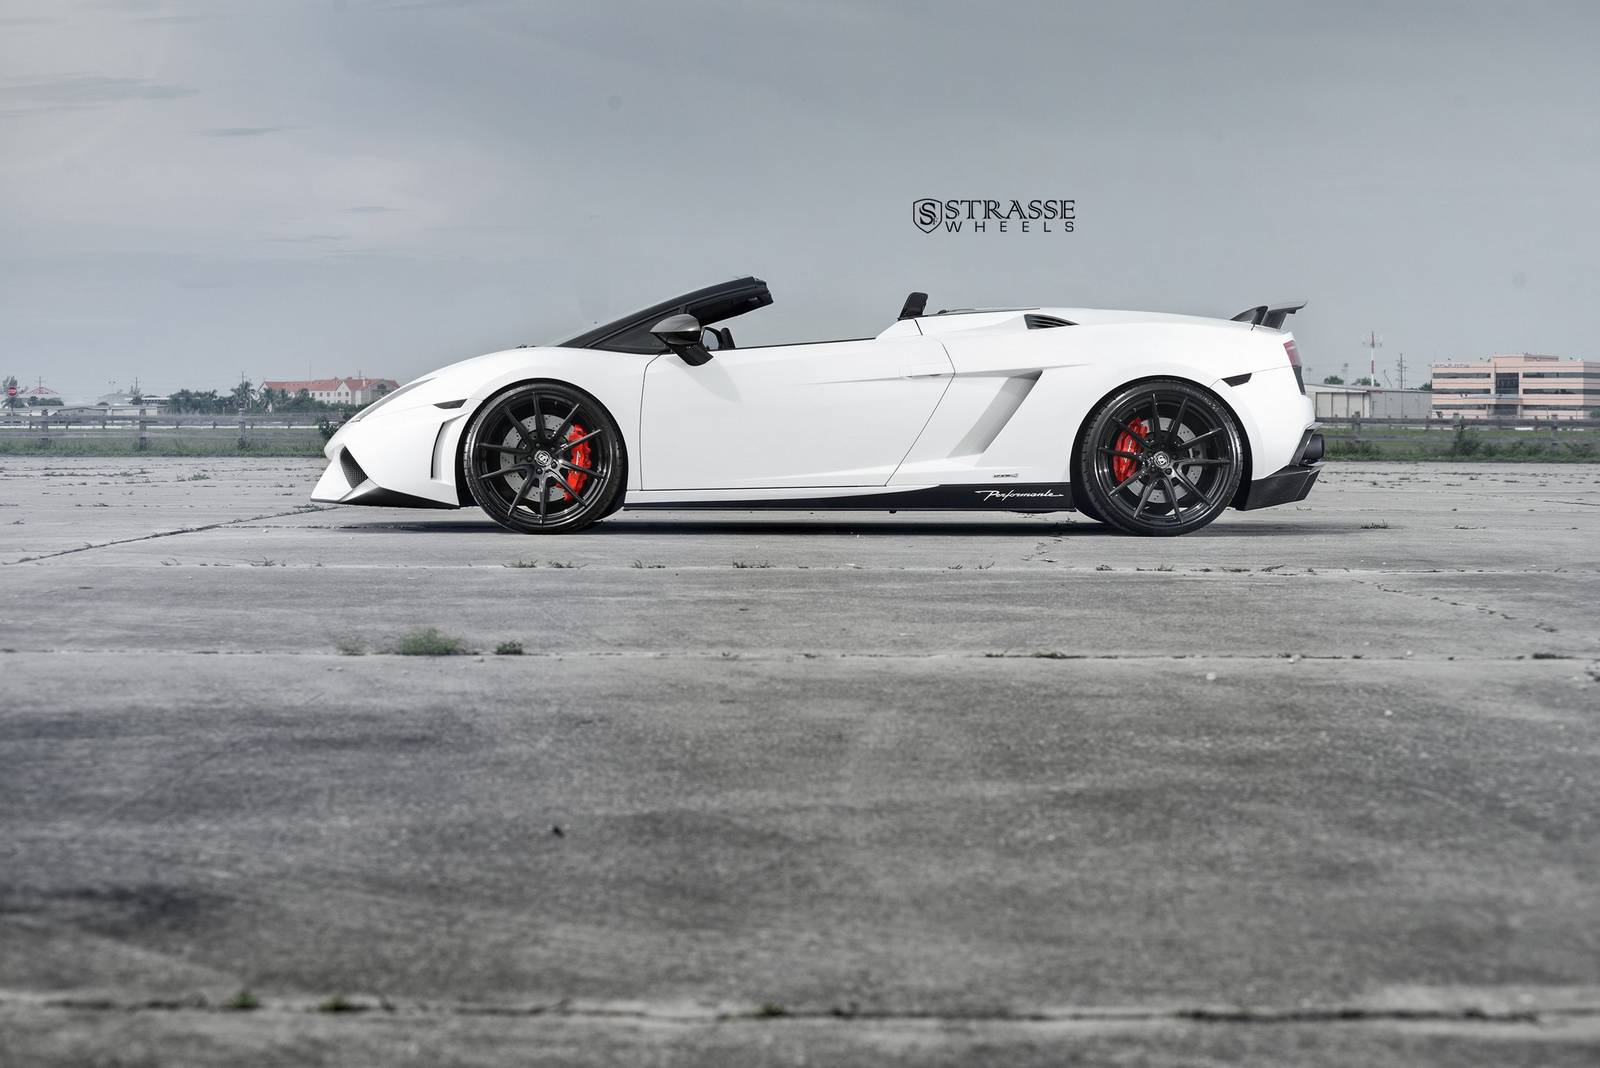 Lamborghini Gallardo Spyder Performante Strasse Wheels